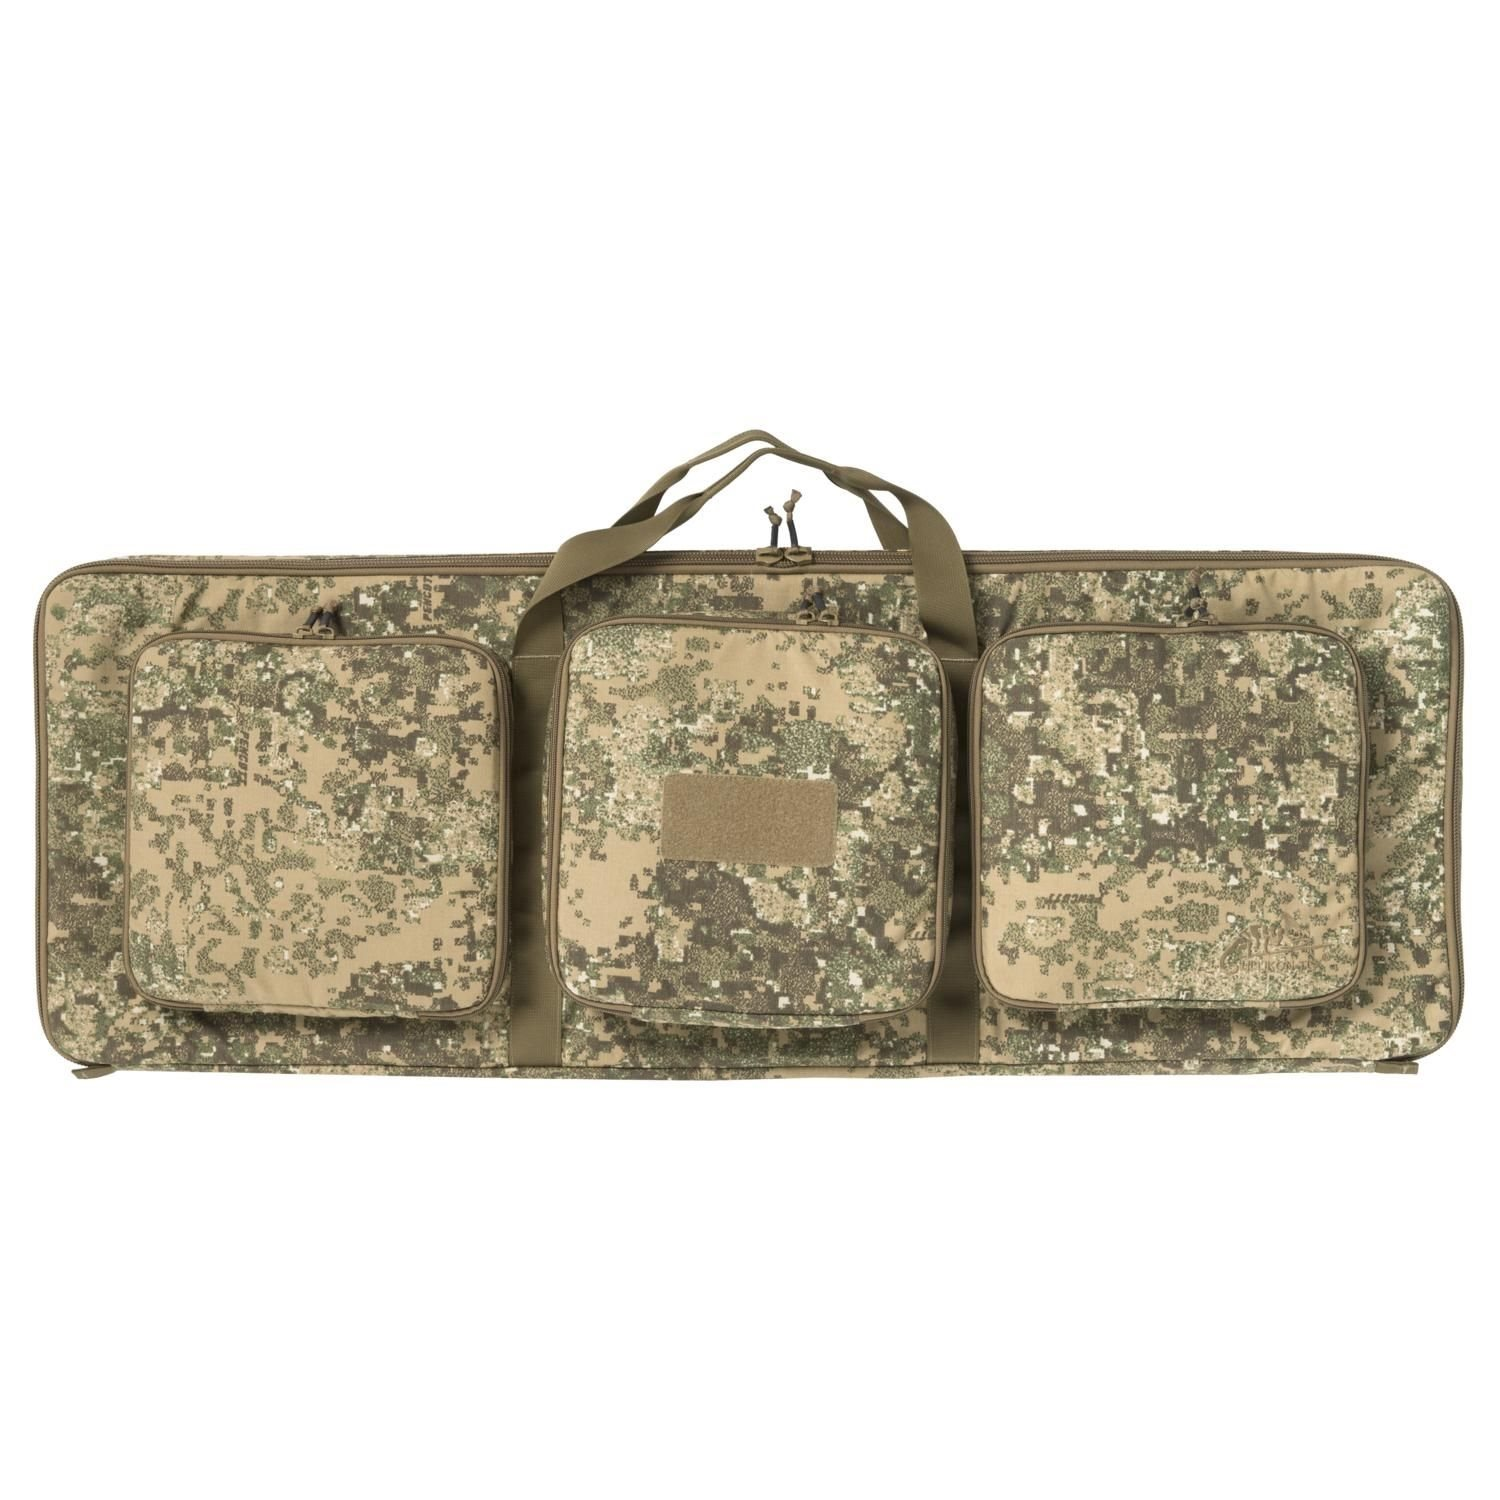 Puzdro na pušku RIFLE BAG 18® PENCOTT® BADLANDS™